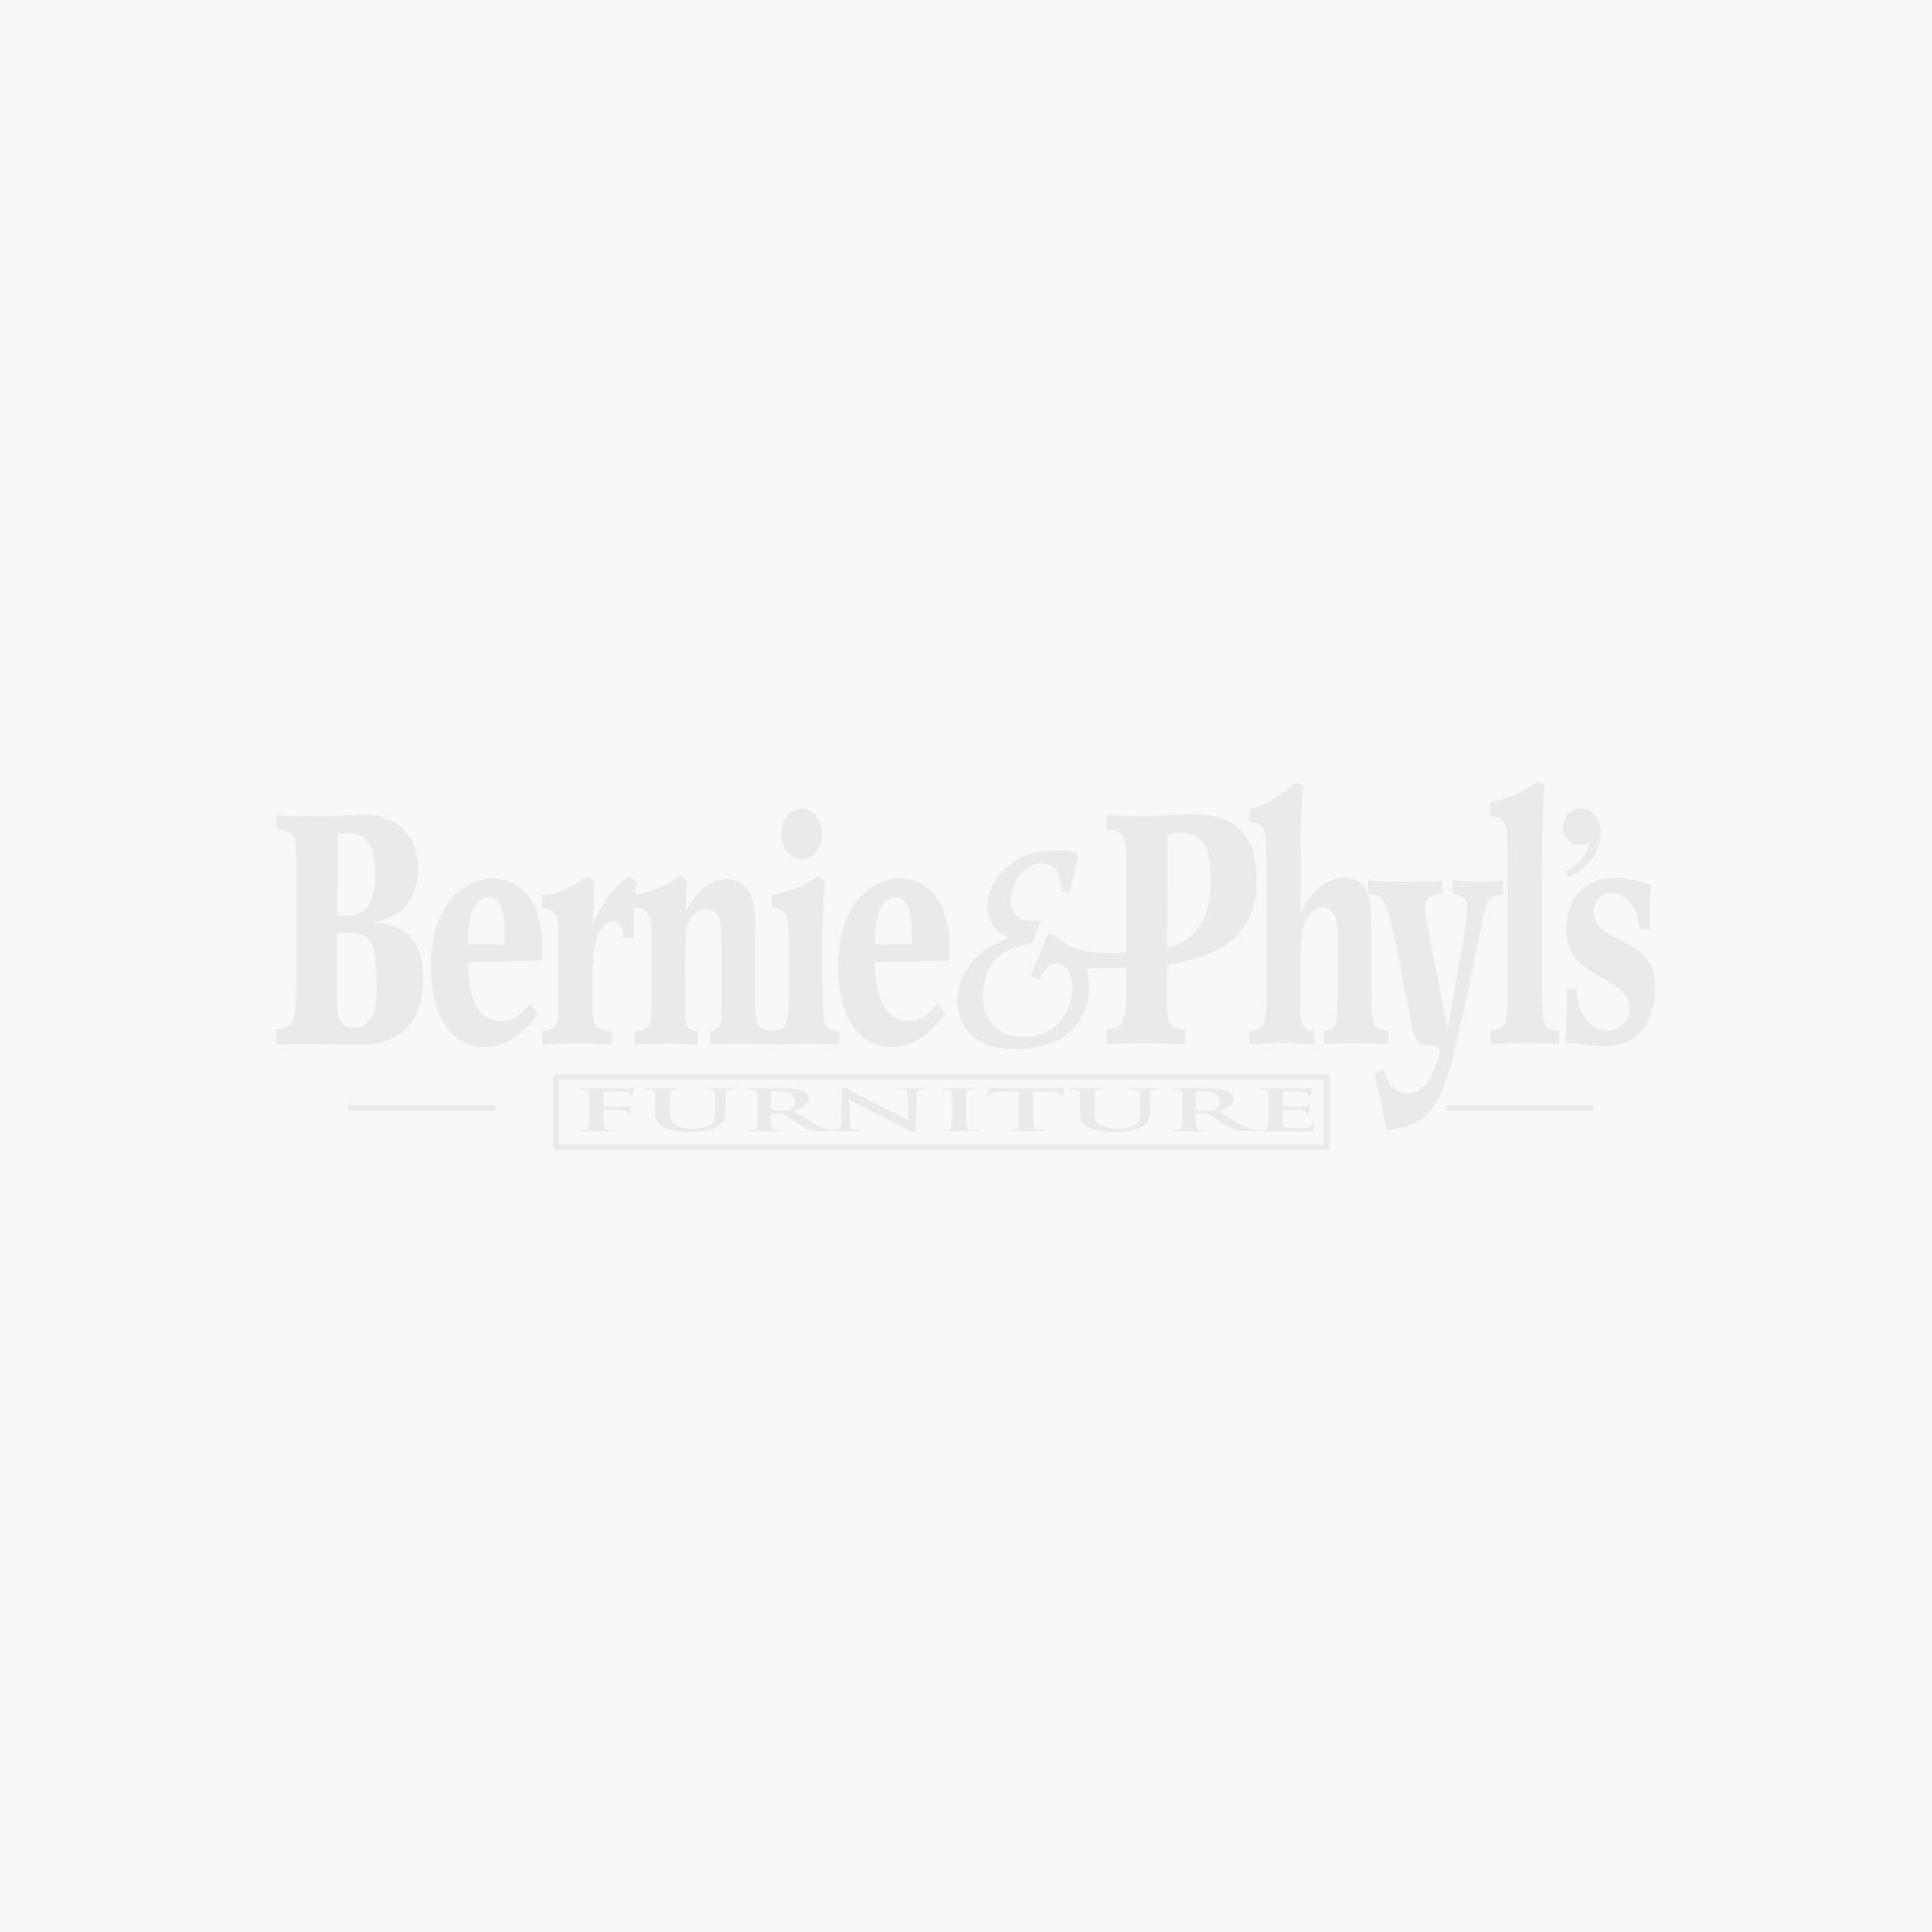 number recliner electric tobin sofa item with flexsteel power latitudes products headrest reclining